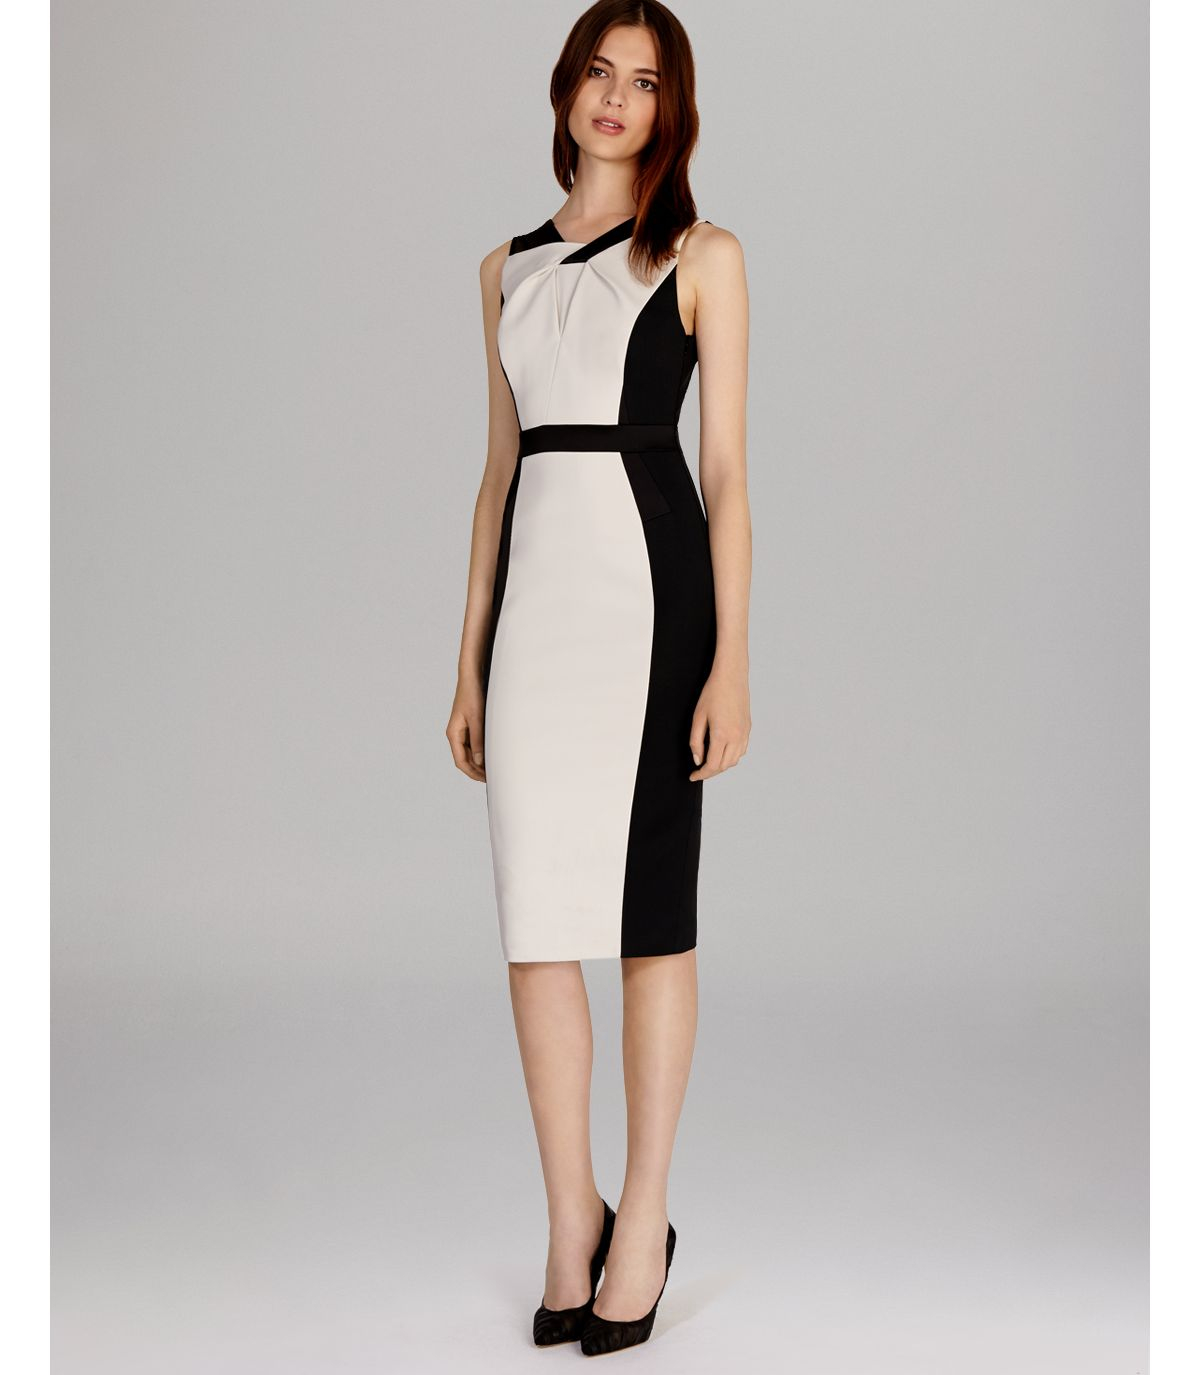 Karen Miller Evening Dresses at Dillard's